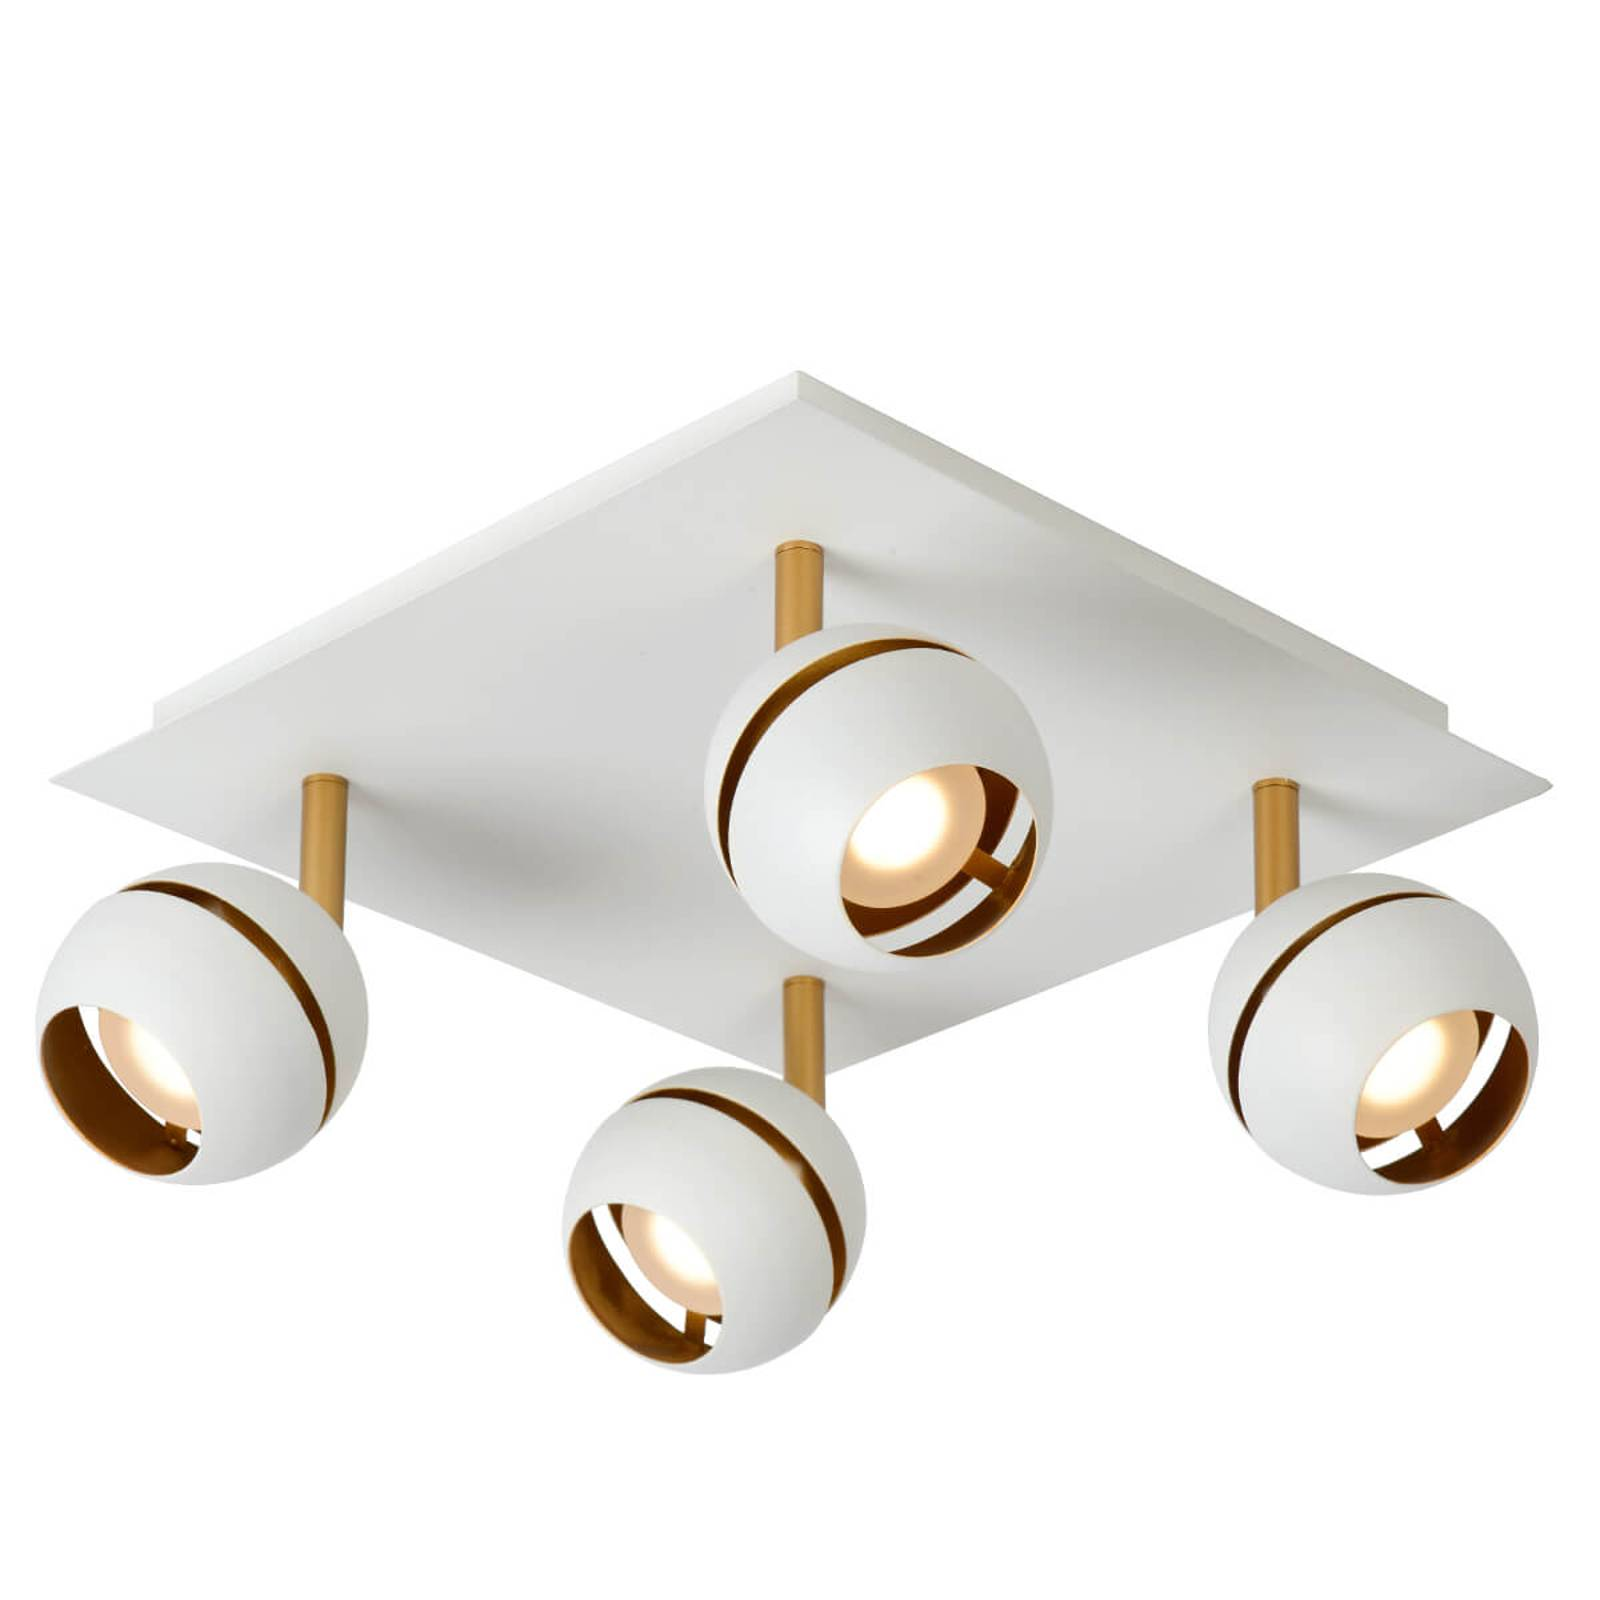 Four-bulb LED ceiling lamp Binari in white from Lucide